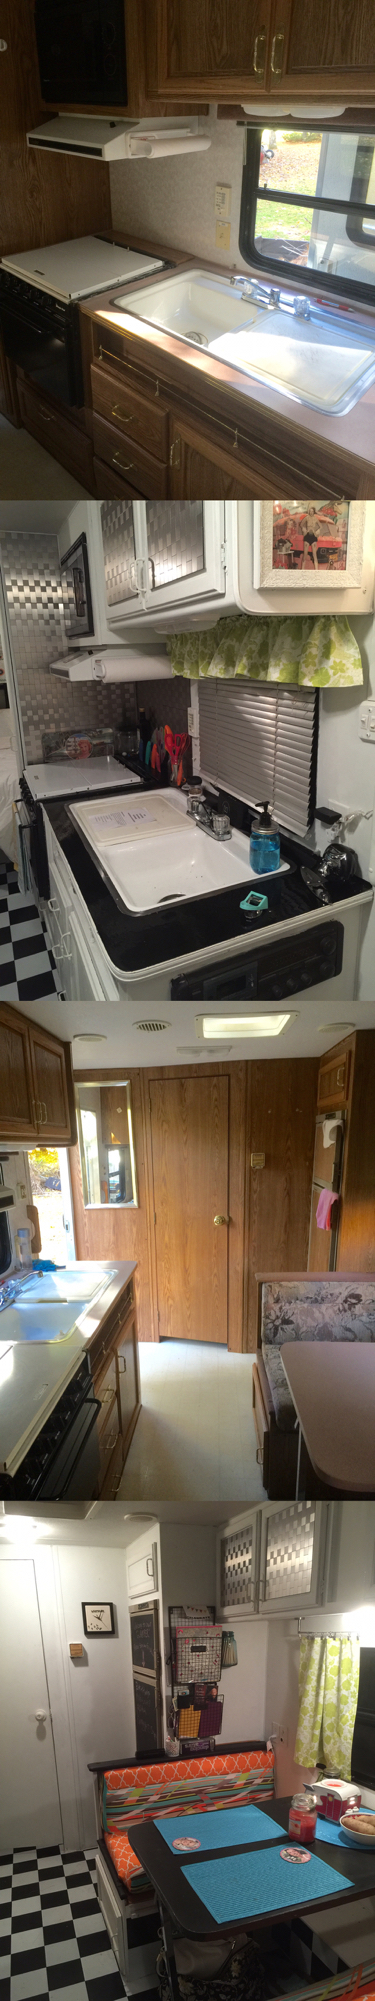 Before And After Of My First Camper Remodel 1996 Wilderness Remodeled Campers Camper Decor Camper Renovation